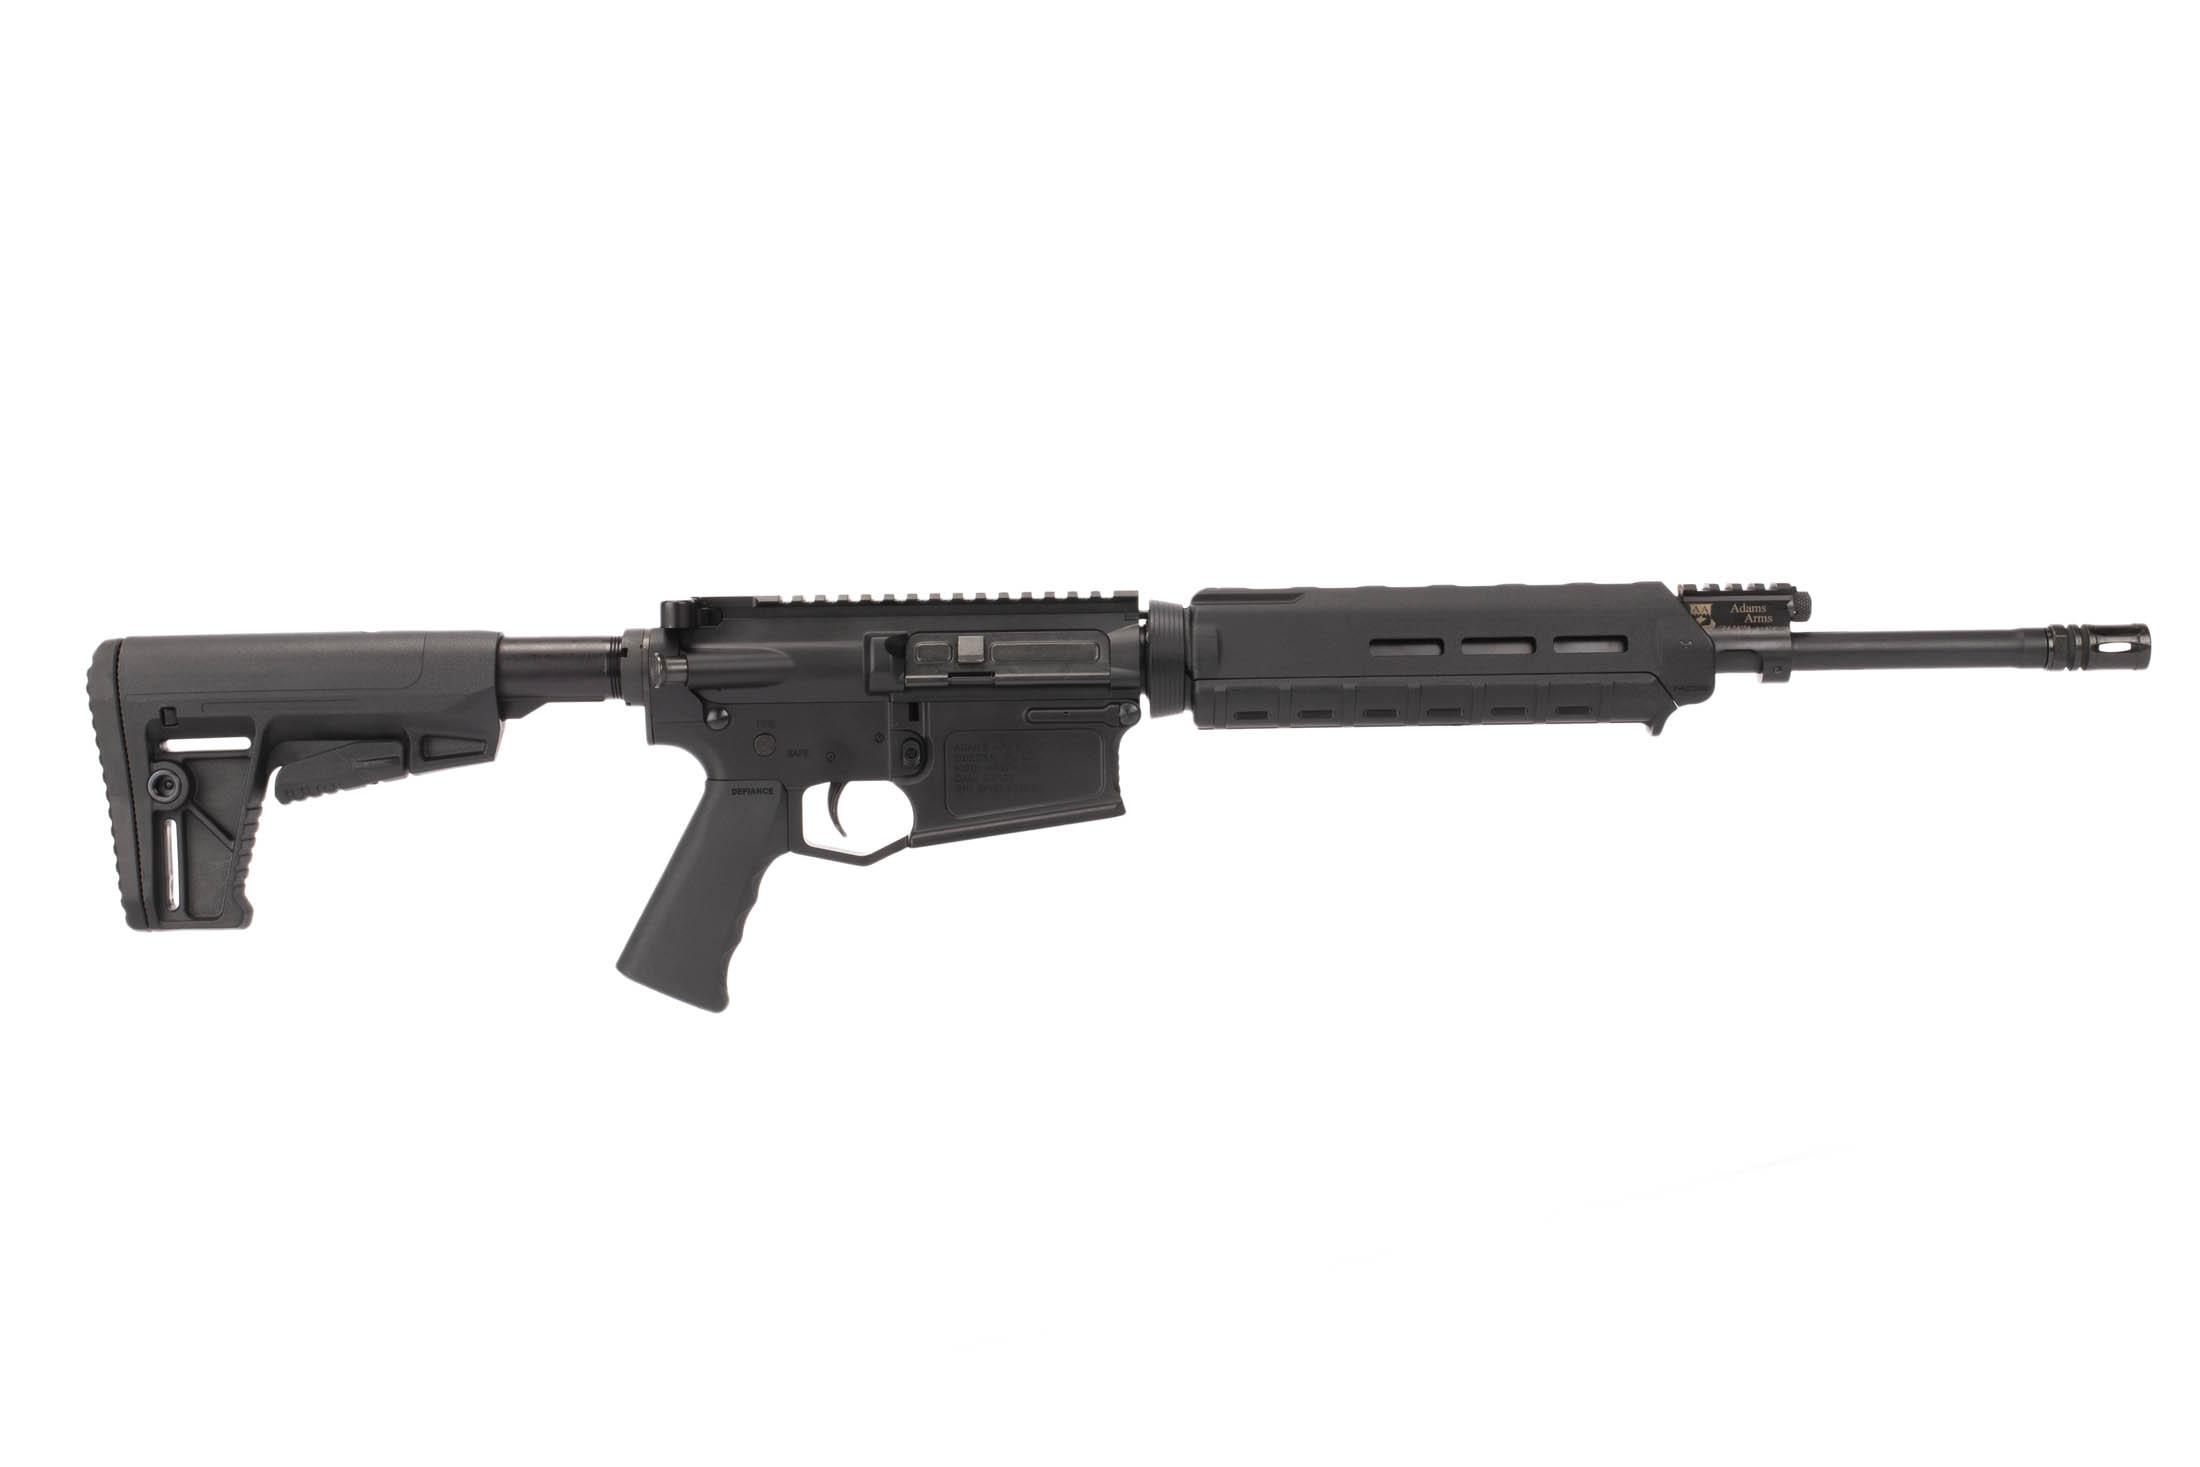 Adams Arms 16in .308 Win AR-10 rifle with 10in M-LOK rail is powered by reliable short stroke gas piston